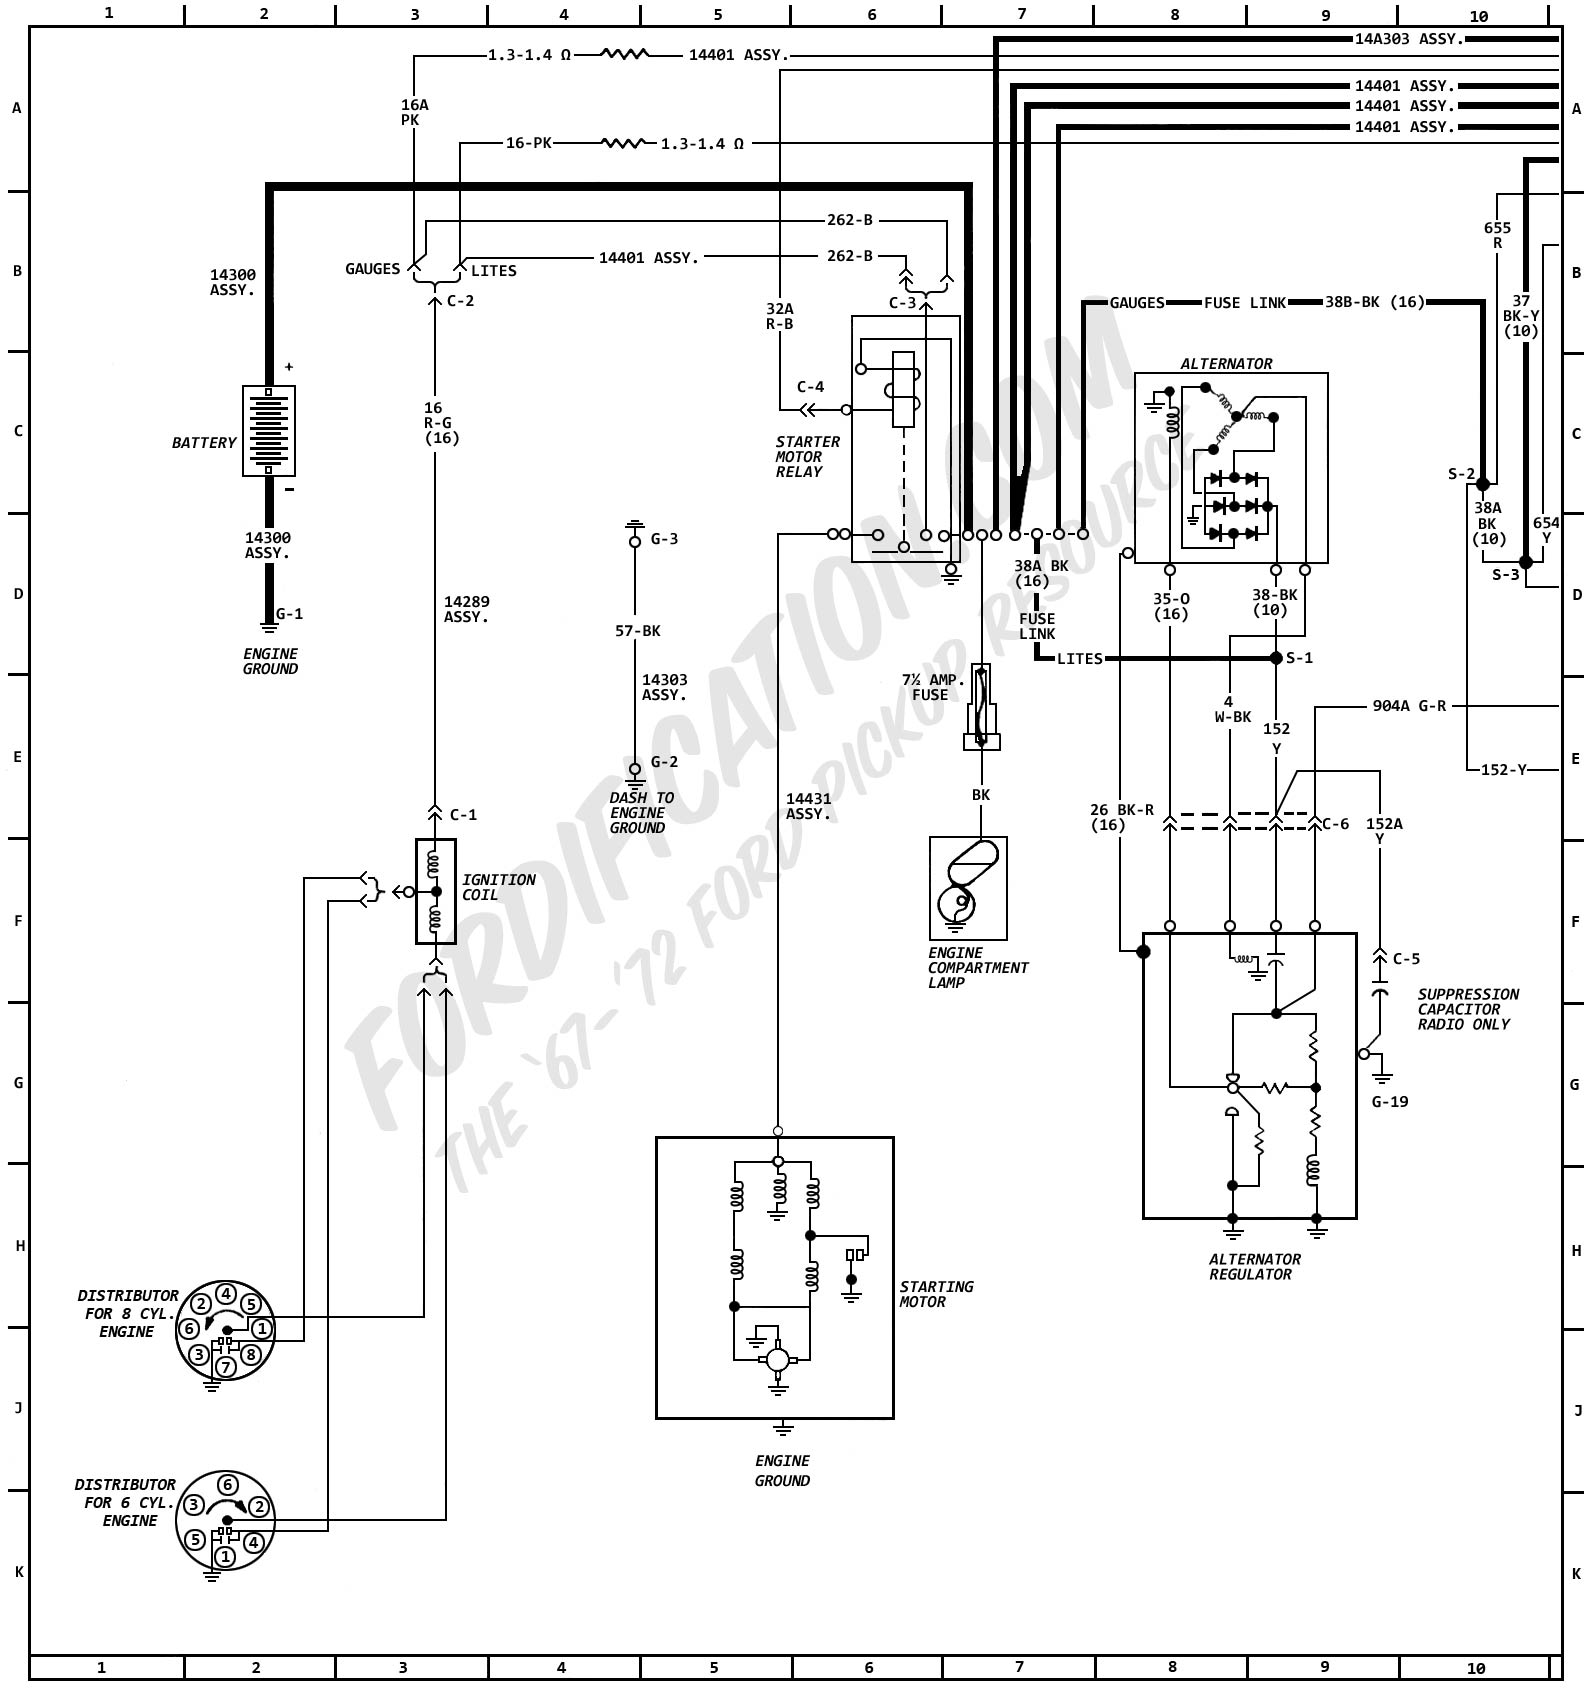 1972MasterWiring_01?resize=665%2C708 ford courier wiring diagram wiring diagram Basic Electrical Wiring Diagrams at edmiracle.co